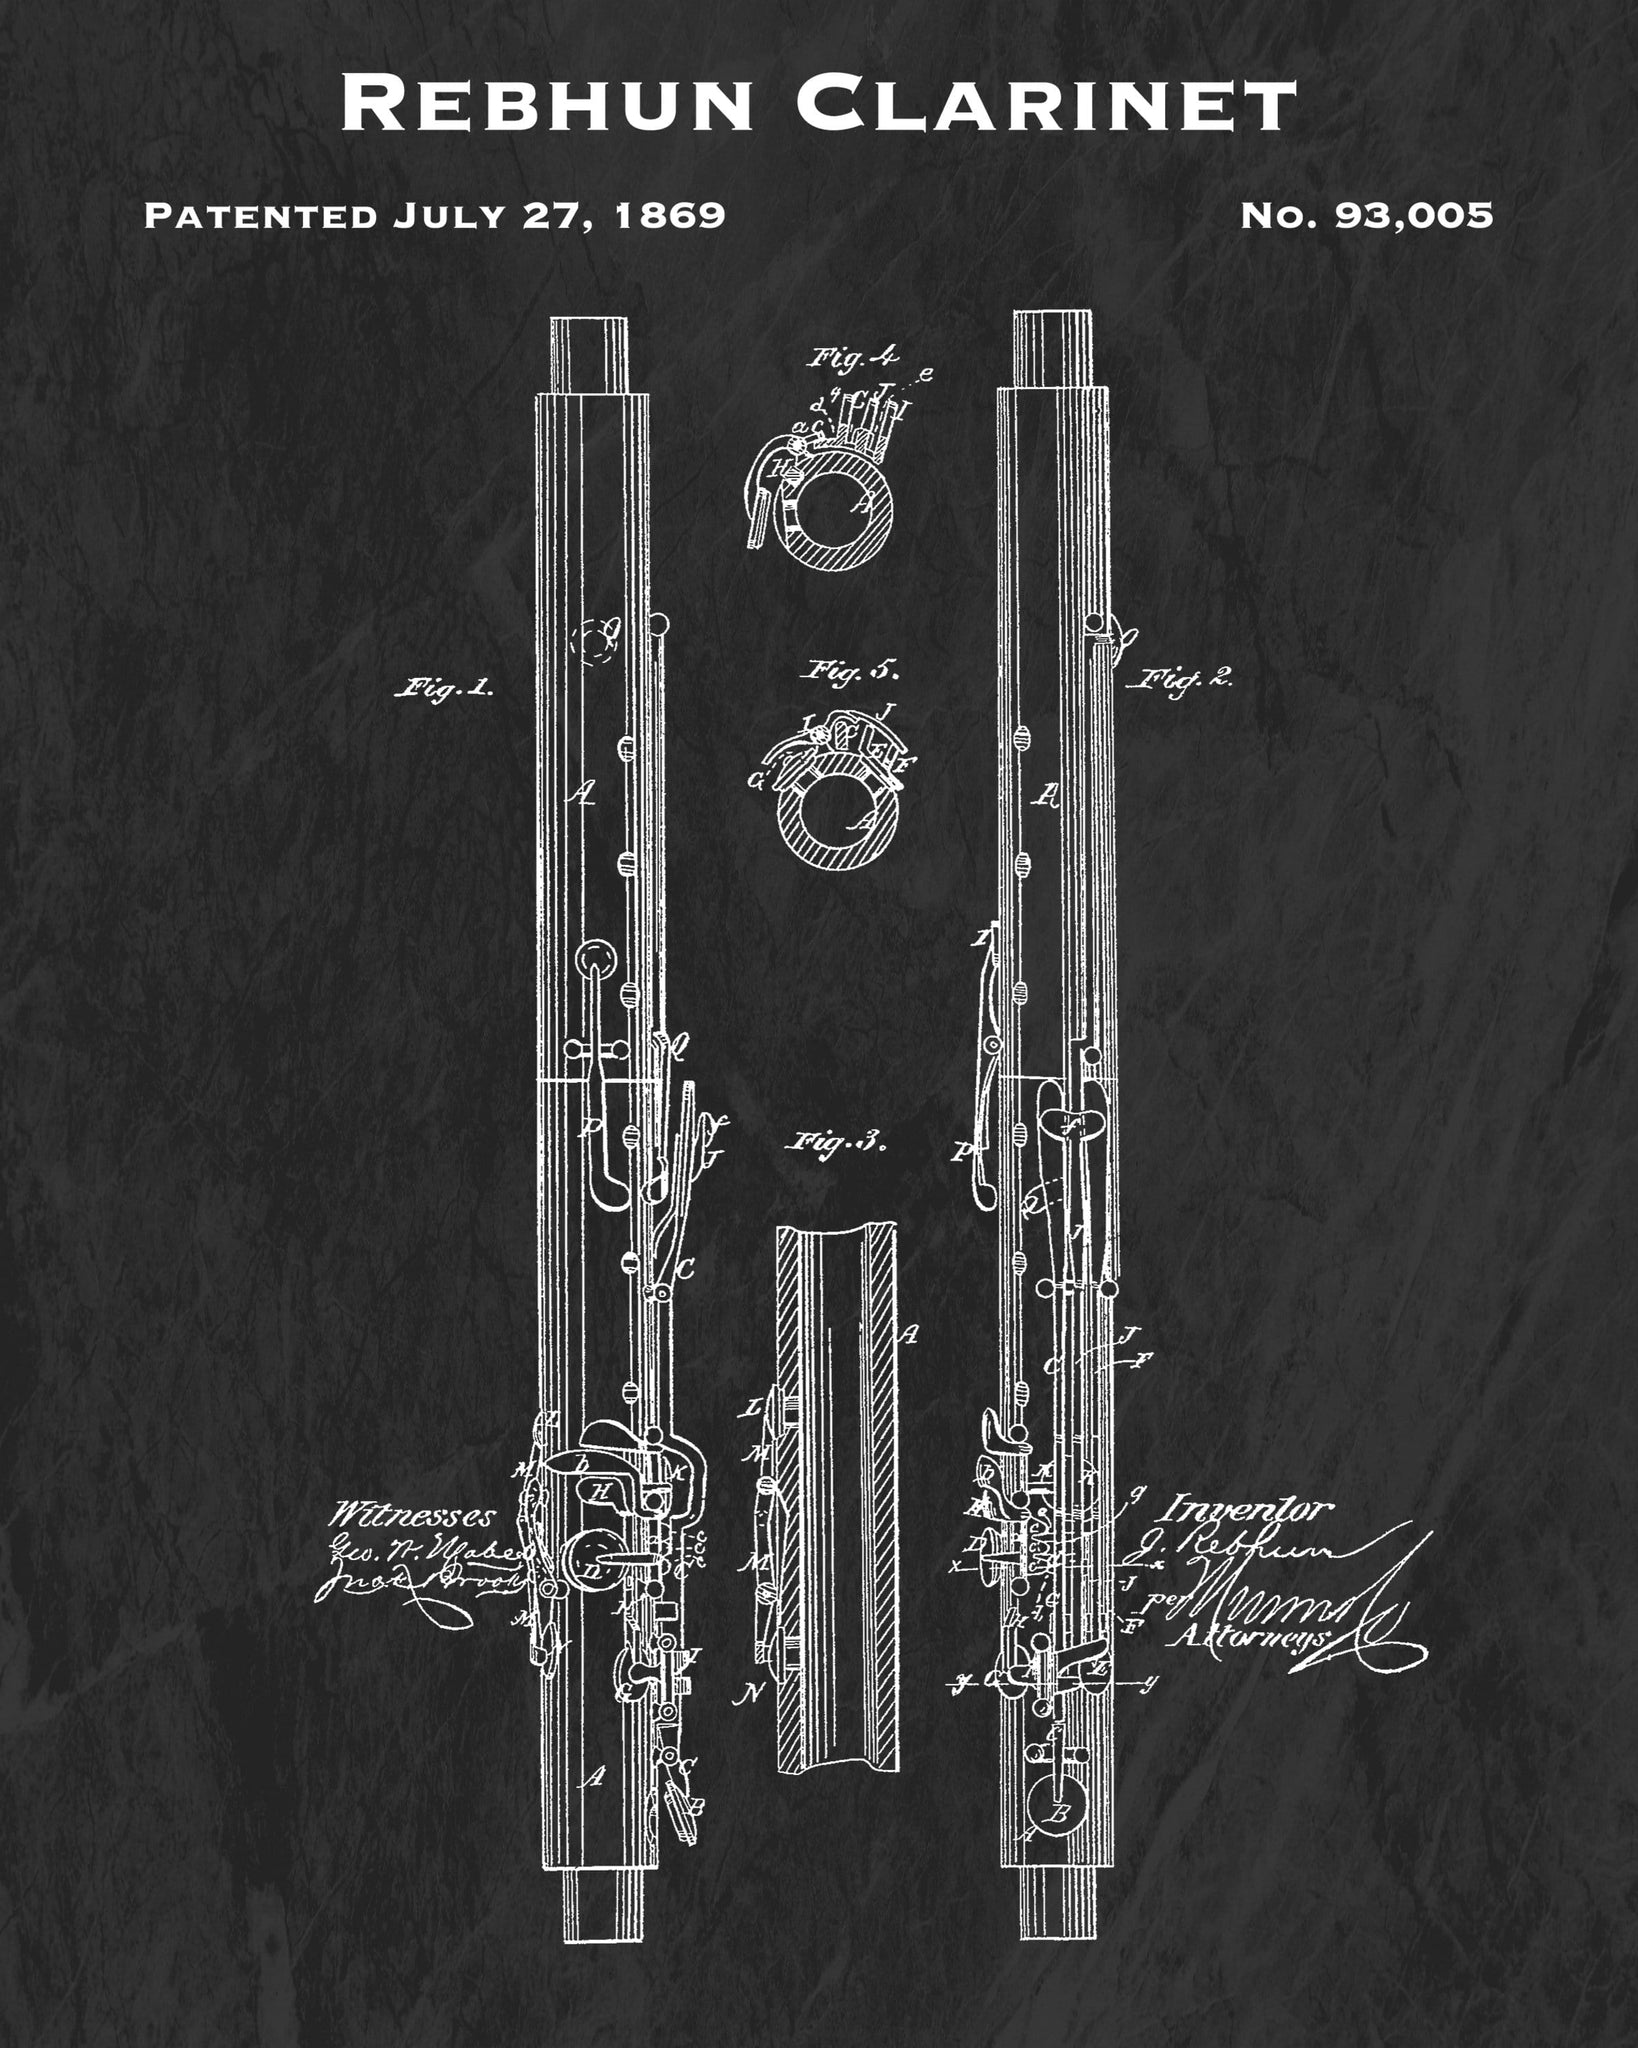 Rebhun Clarinet Patent Art Print - Music Lover Wall Hanging - Antique Woodwind Instrument